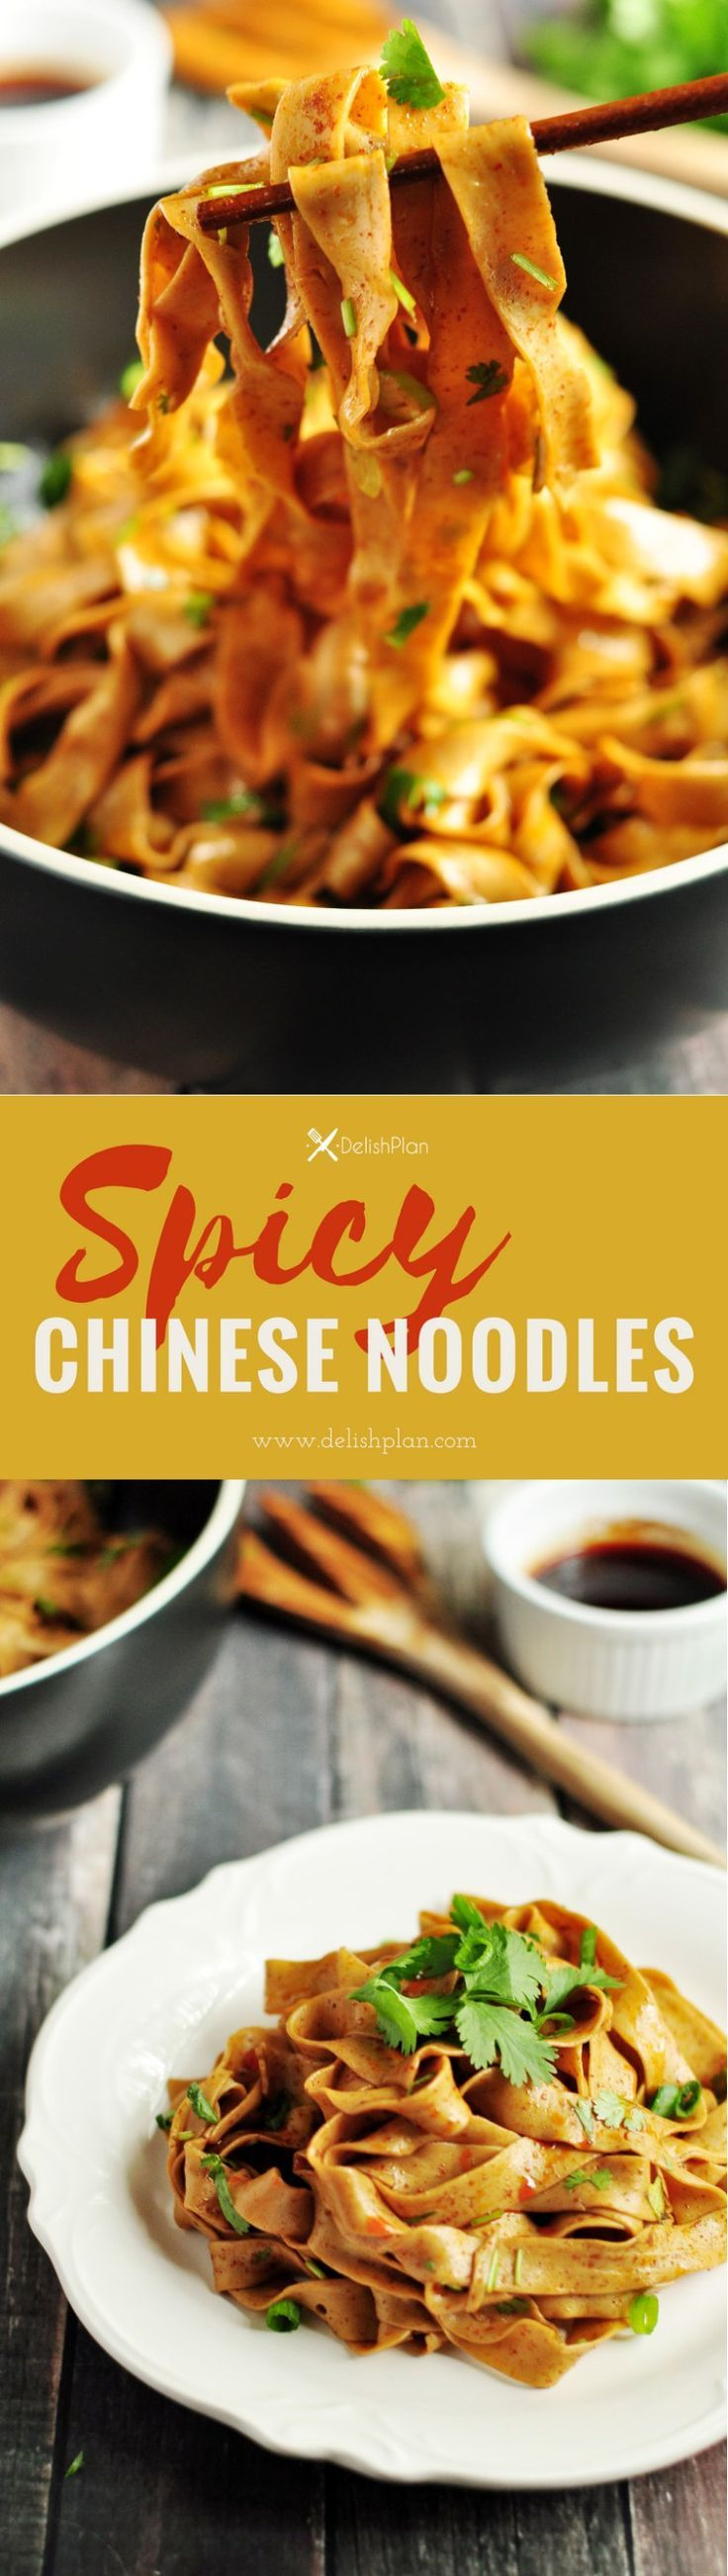 Spicy chinese noodles recipe noodle chinese food recipes and spicy chinese noodles recipe noodle chinese food recipes and korean food recipes forumfinder Image collections